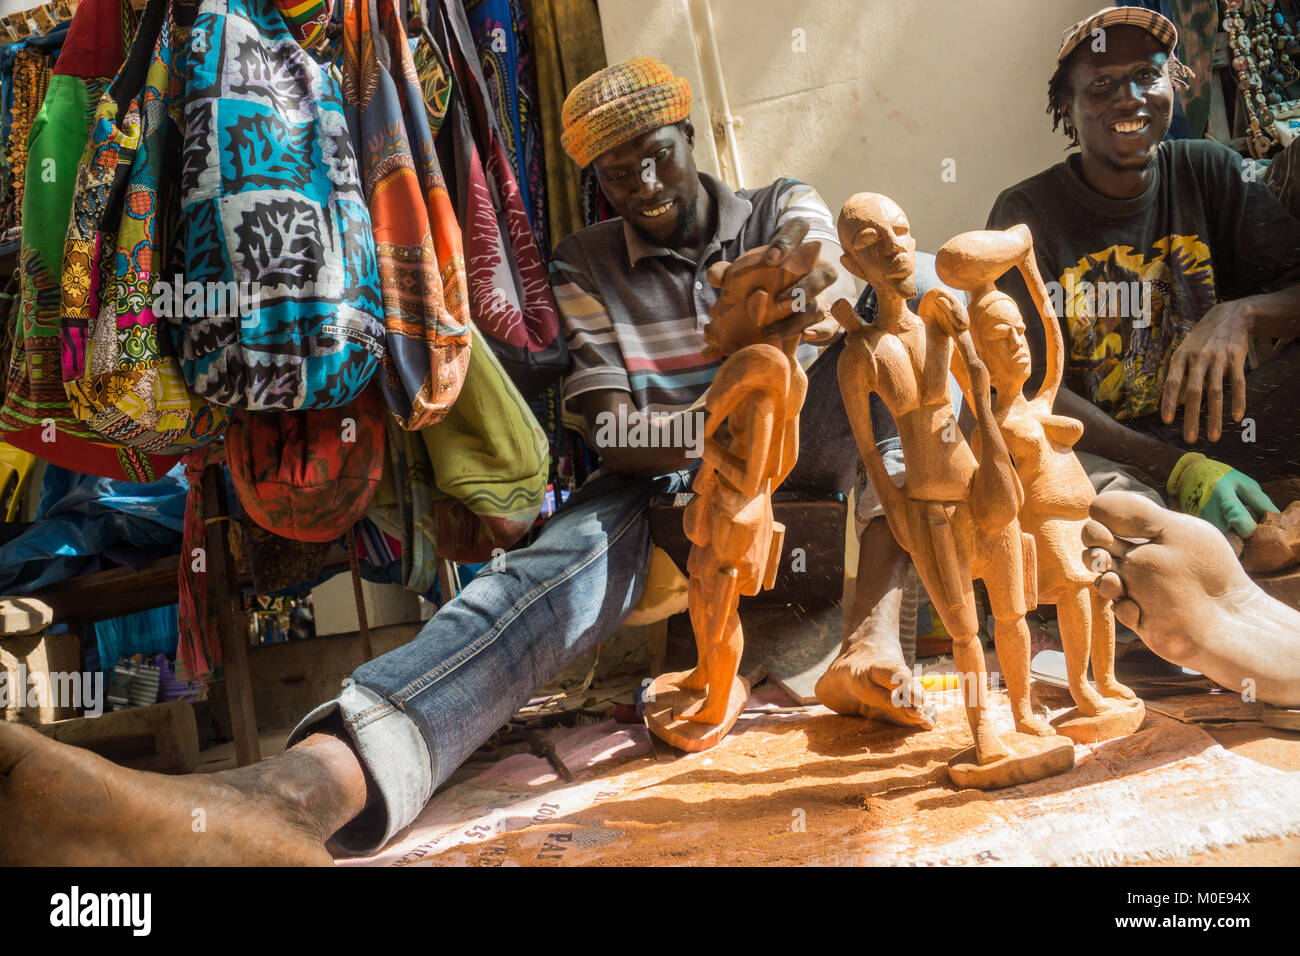 An African man carves wooden statues in Senegambia, Gambia - Stock Image